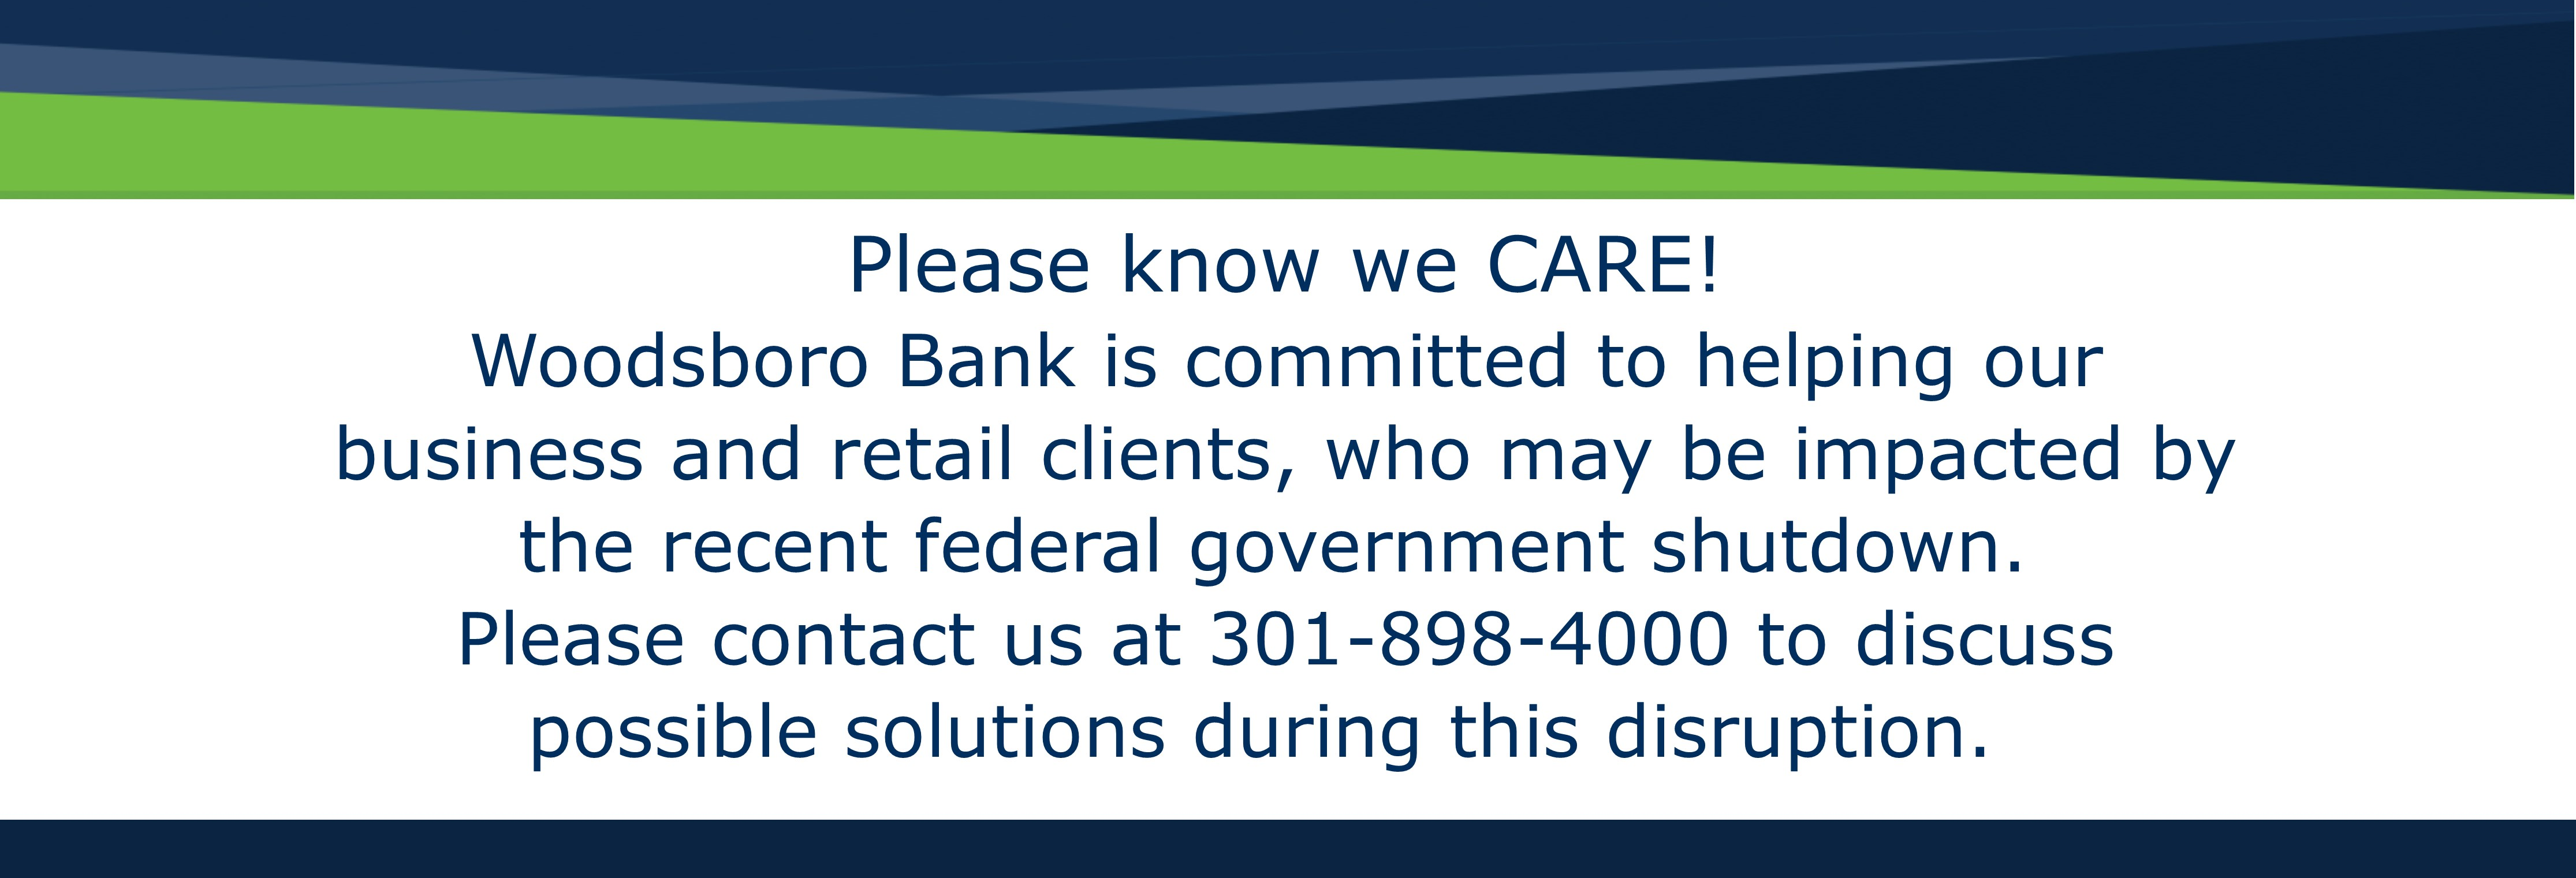 Please know we CARE!  Woodsboro Bank is committed to helping our business and retail clients, who may be impacted by the recent federal government shutdown.  Please contact us at 301-898-4000 to discuss possible solutions during this disruption.